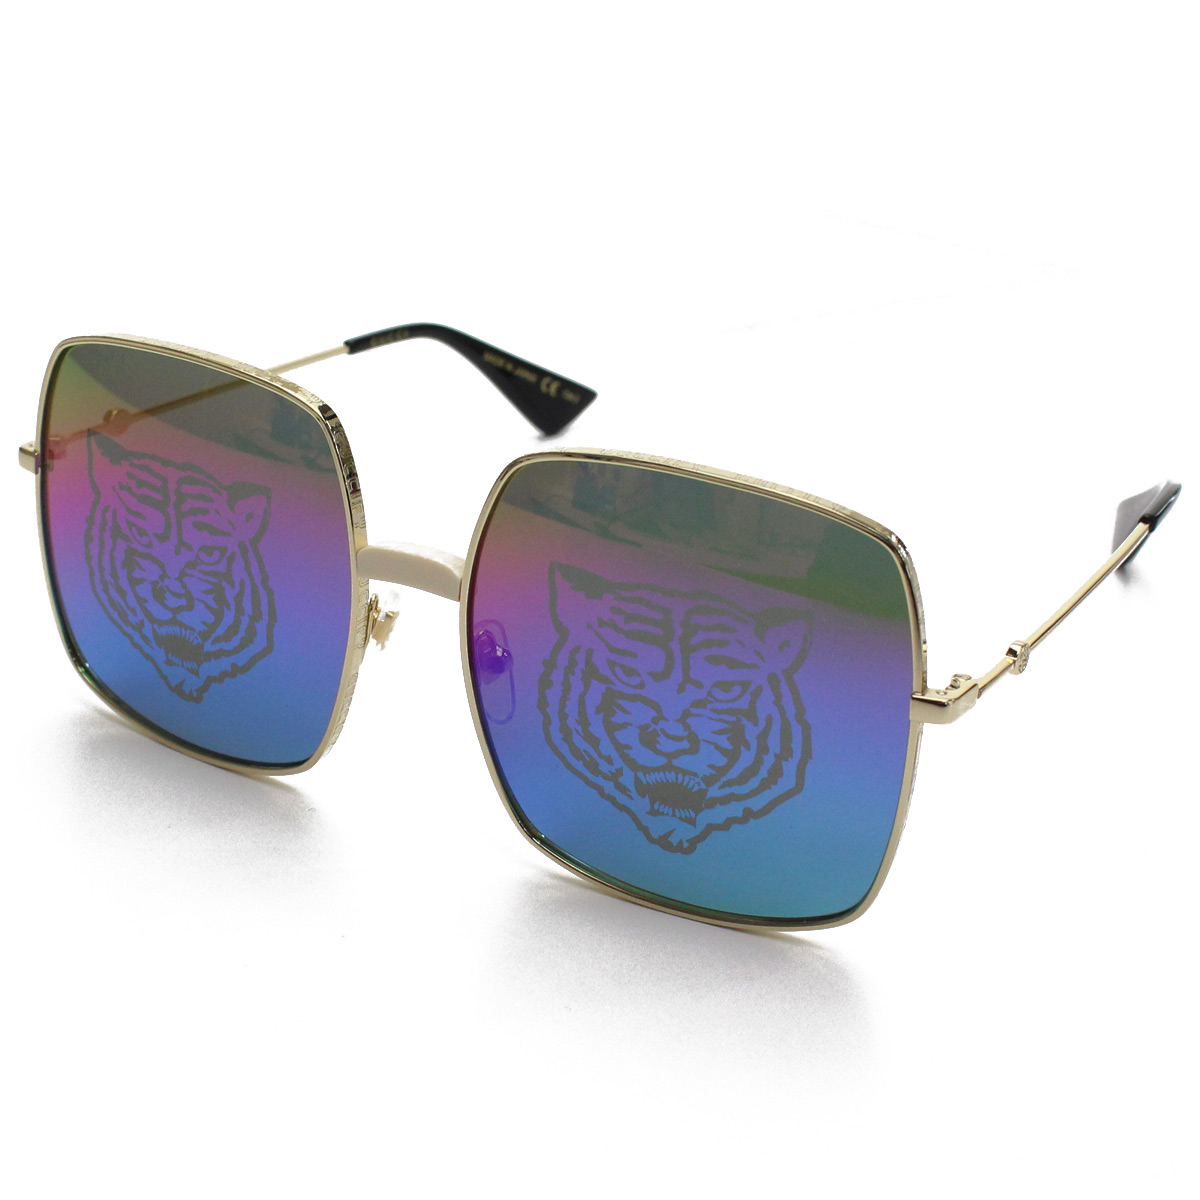 afdb9e29276 Sunglasses of Gucci (Gucci). The print of the head of one tiger of the  symbol of Gucci is put for a gradation lens in a square frame silhouette of  the ...